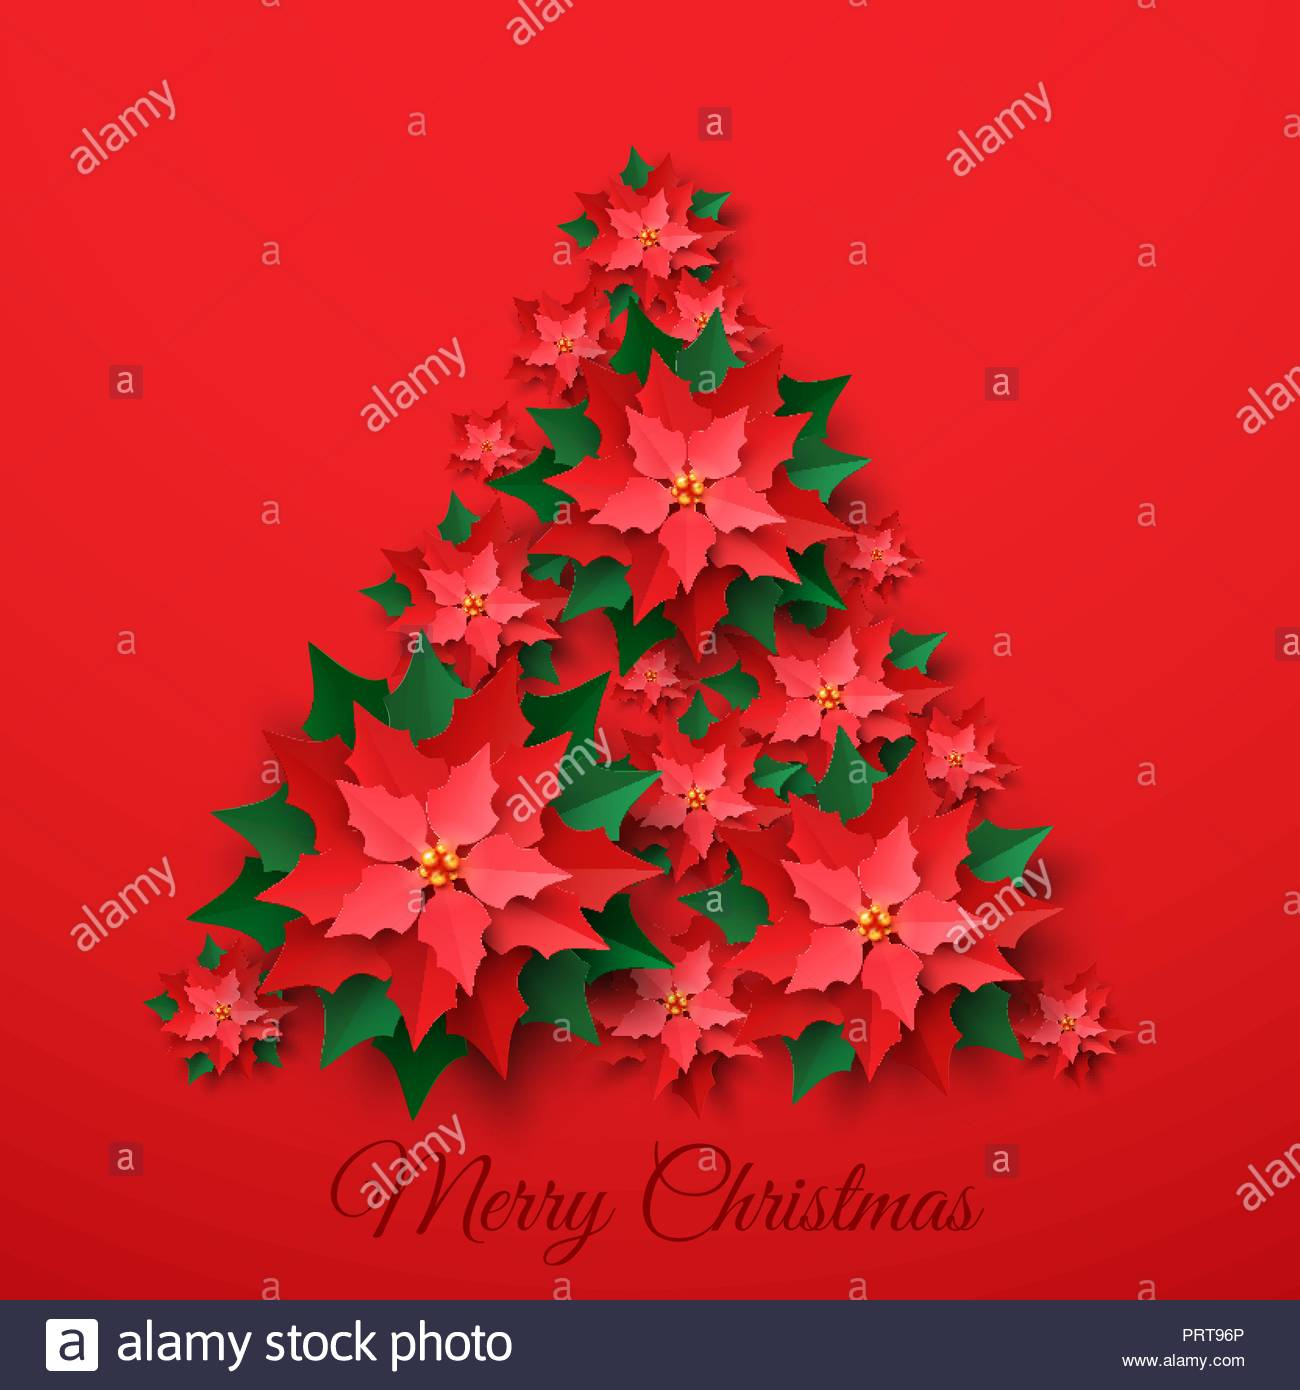 vector red christmas tree made of 3d layered poinsettia flower in paper cut style on red background happy new year and merry christmas greeting card